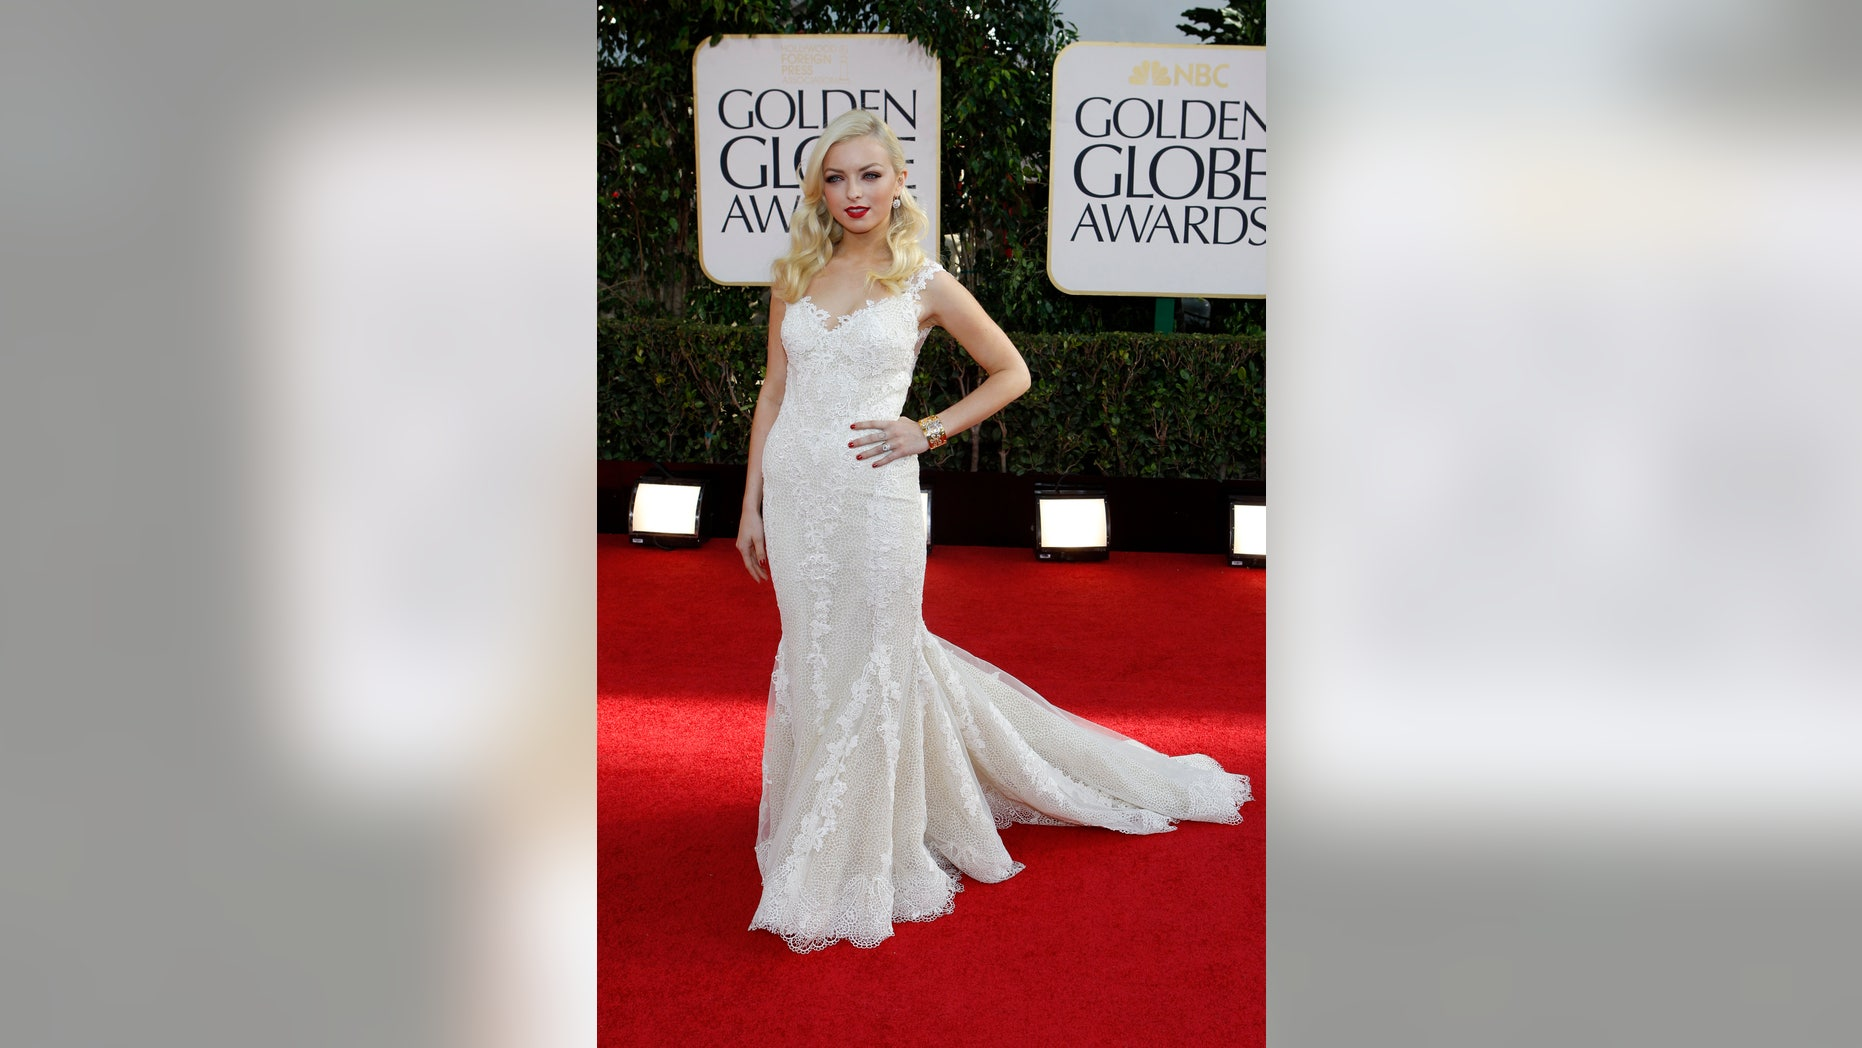 Francesca Eastwood, Miss Golden Globe 2013, poses as she arrives at the 70th annual Golden Globe Awards in Beverly Hills, California, January 13, 2013.